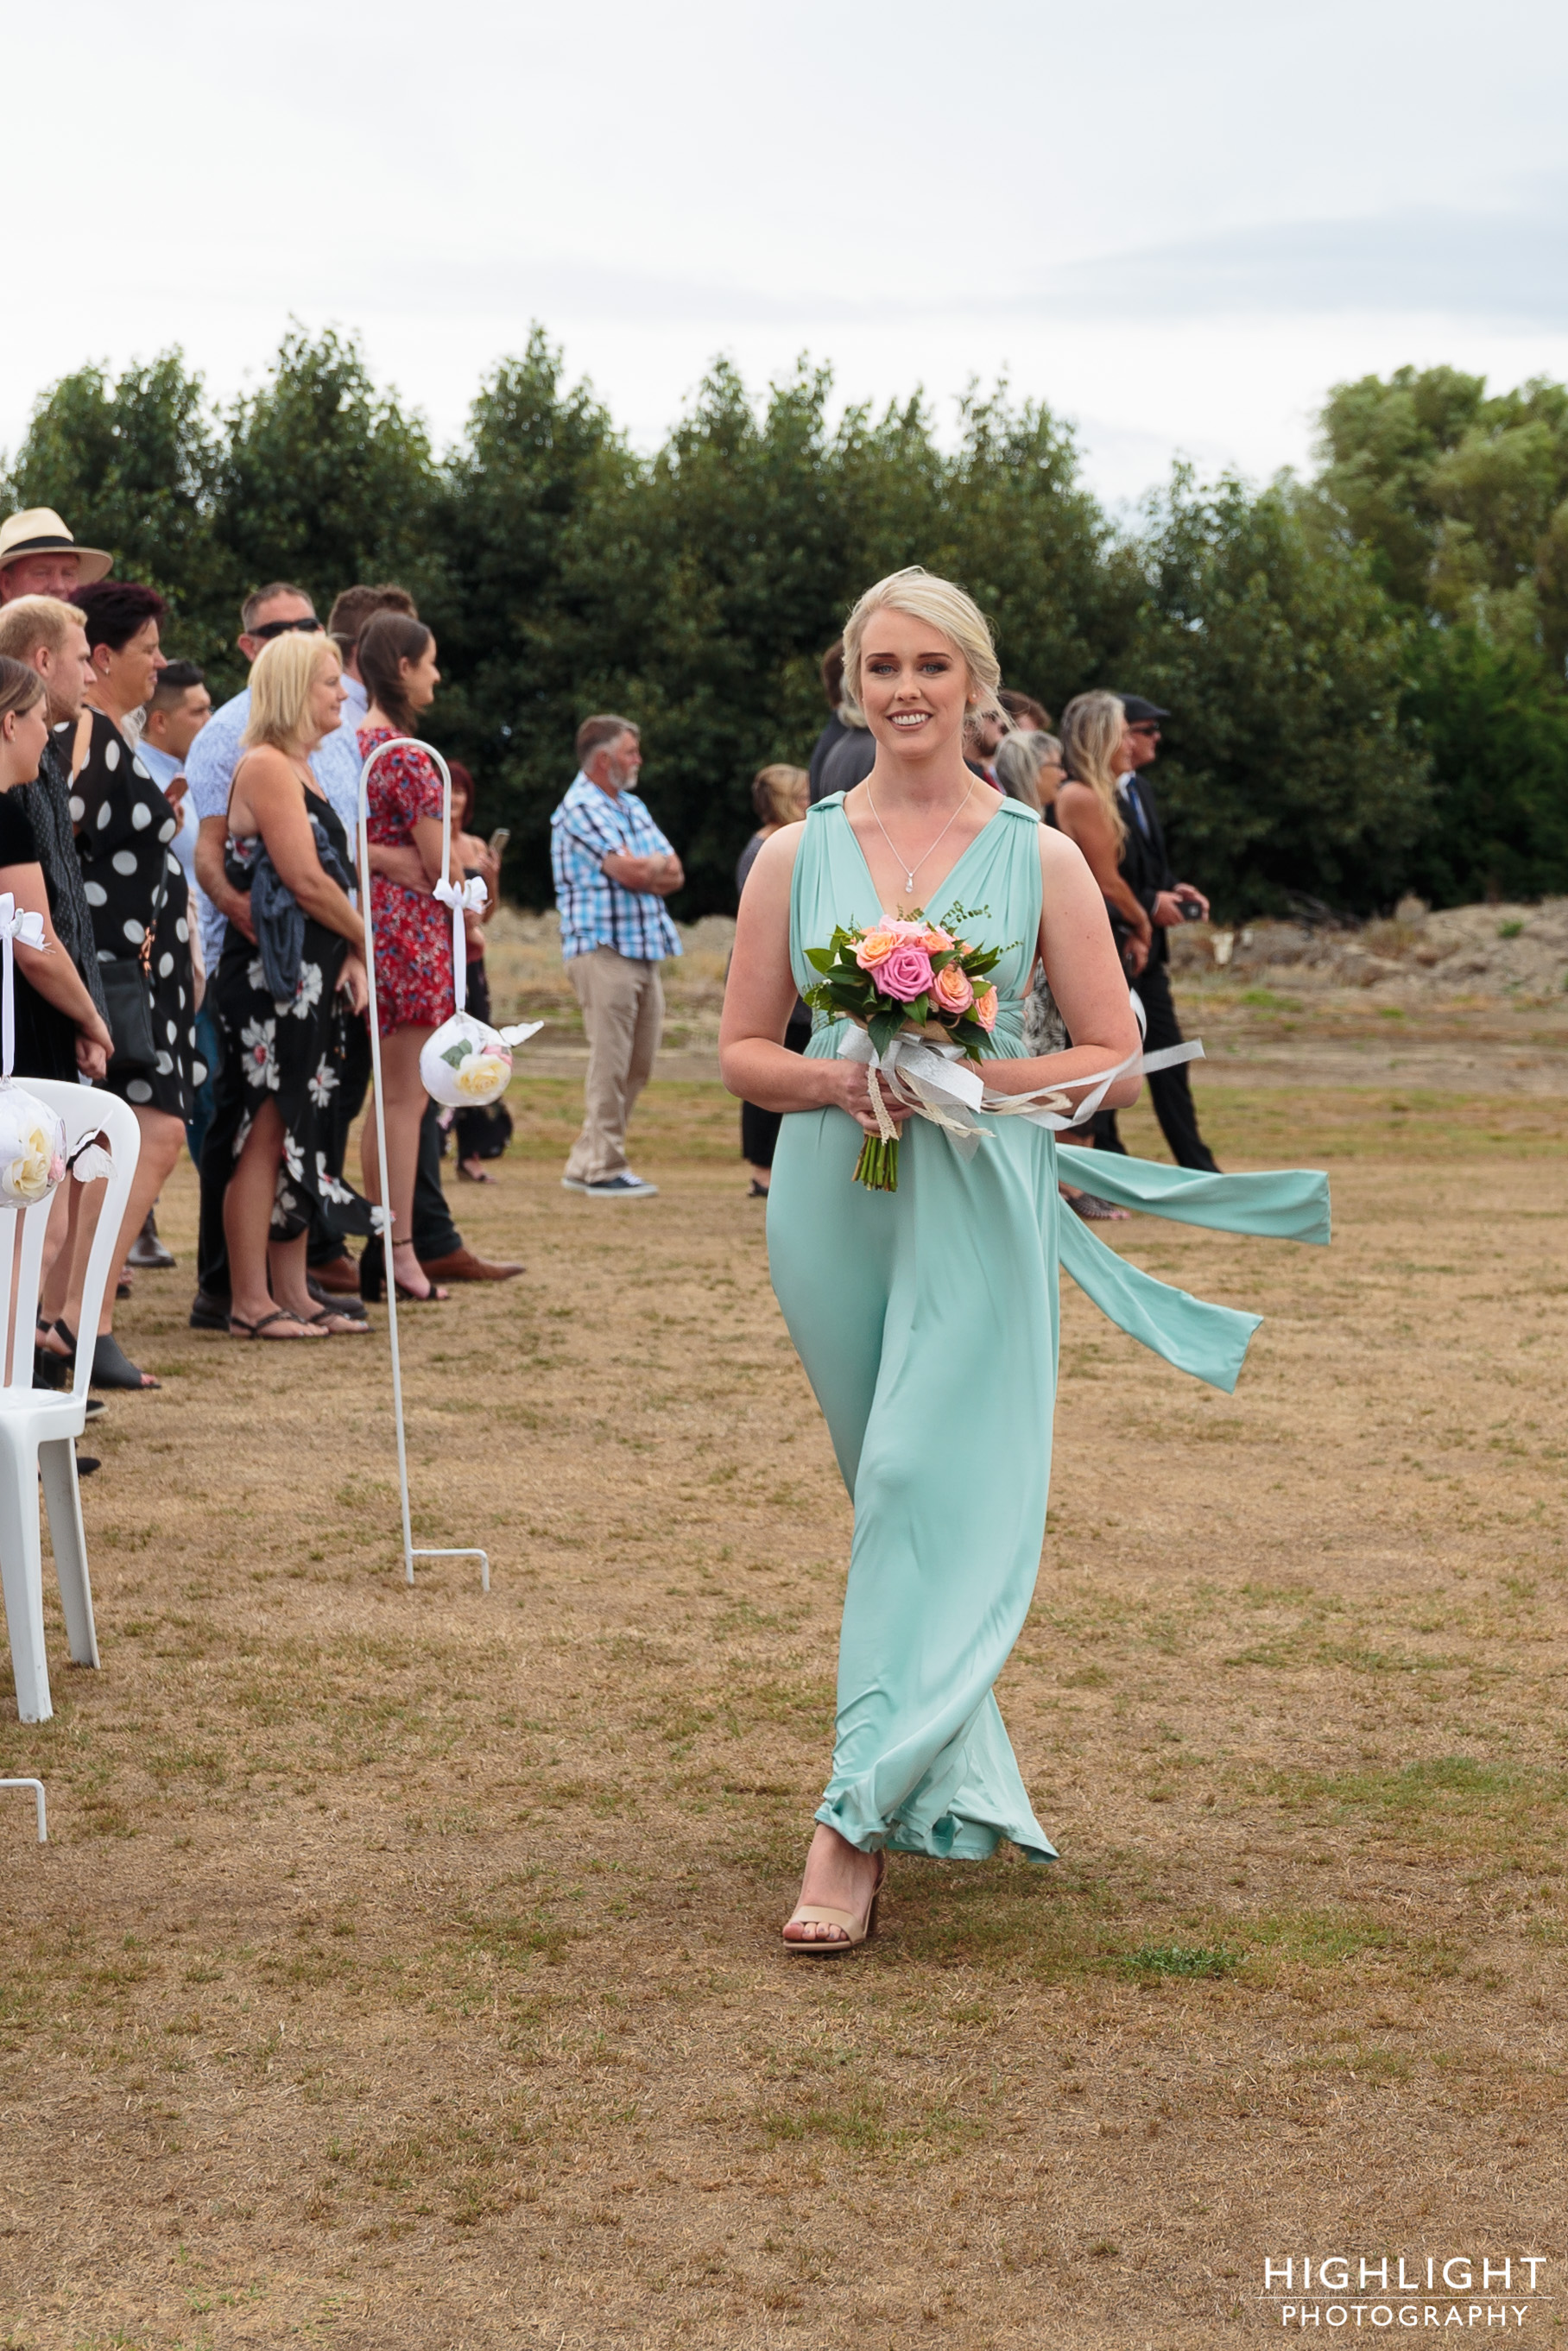 highlight-wedding-photography-new-zealand-cs-orlando-country-wedding-palmerston-north-76.jpg